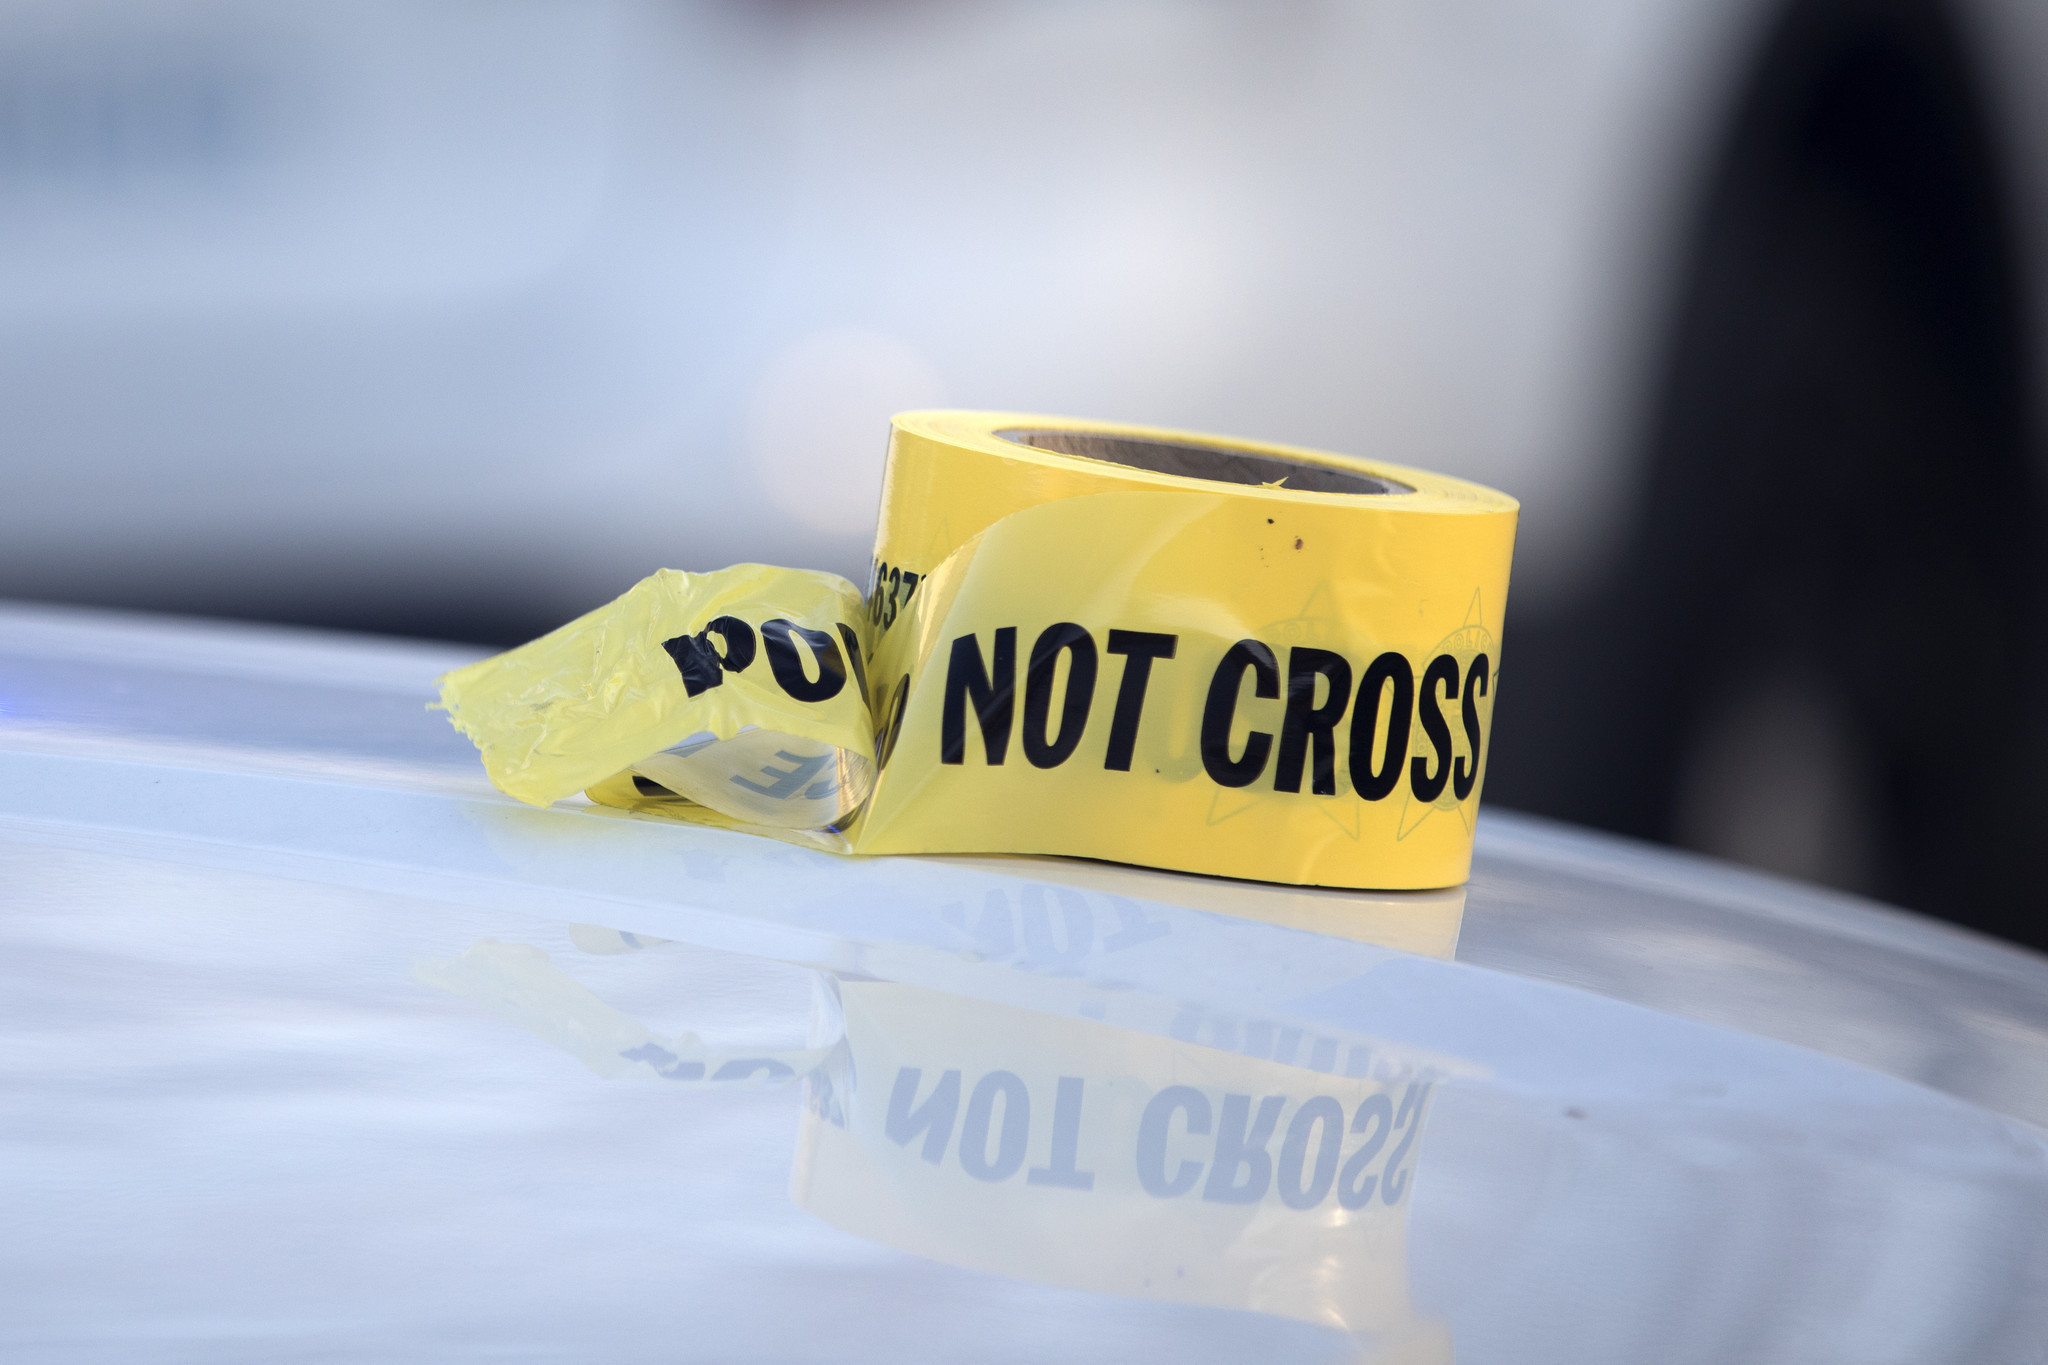 Dixon man under investigation fatally shoots 5-year-old son, self, officials say